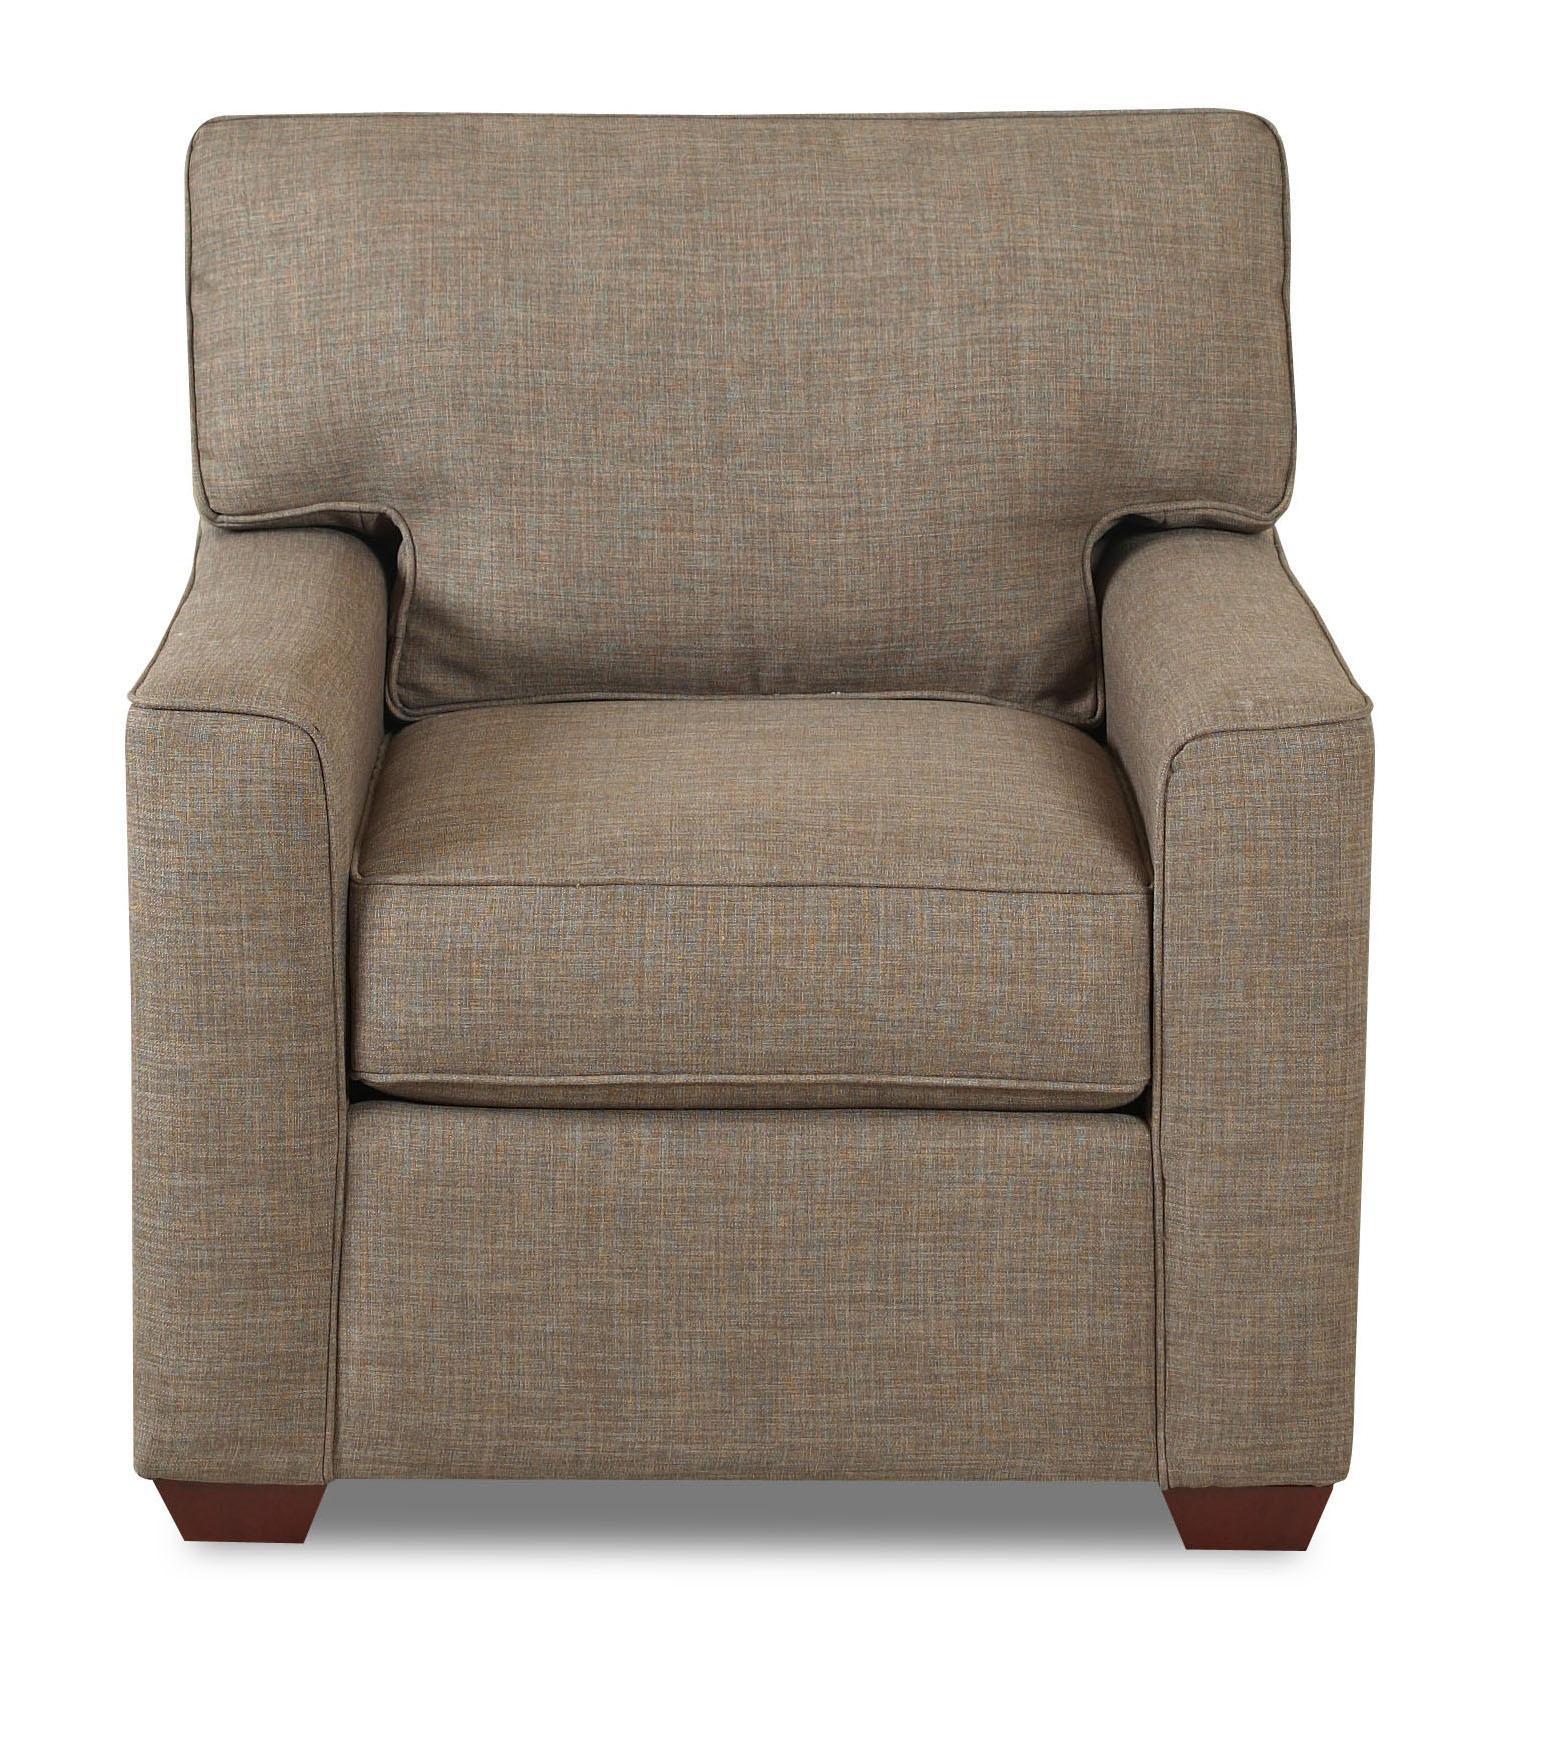 Pantego Chair by Klaussner at Lapeer Furniture & Mattress Center